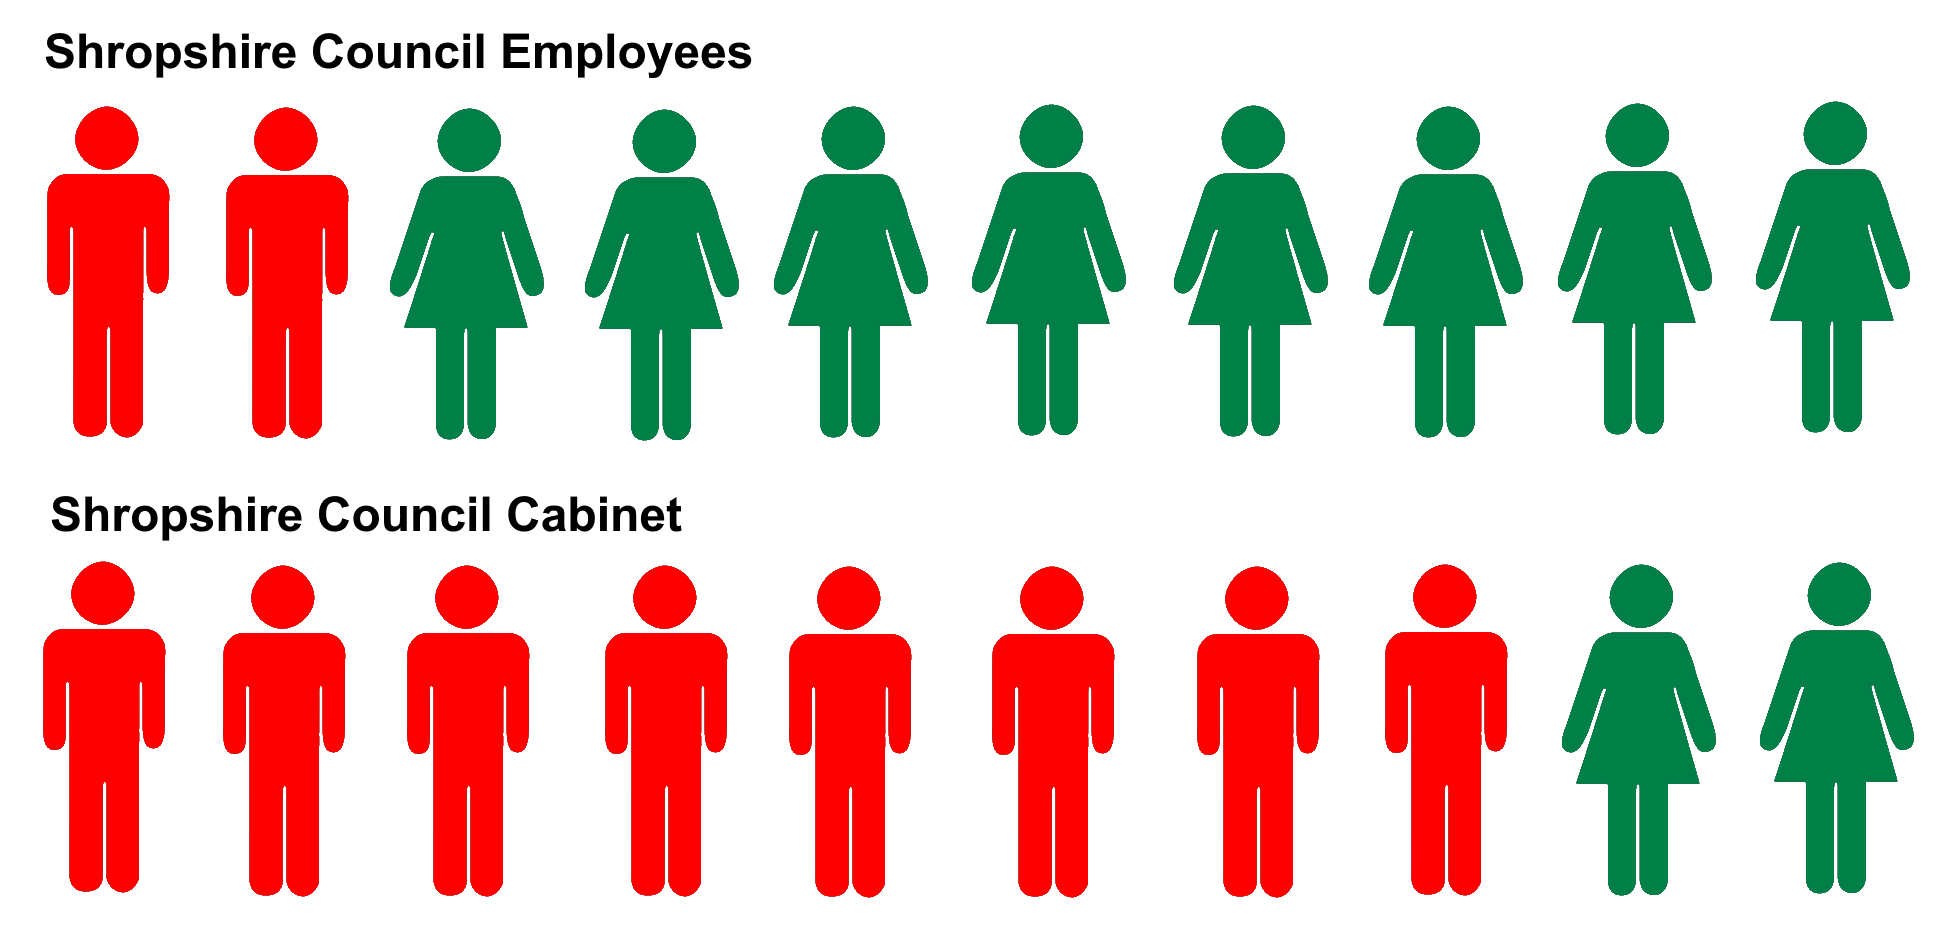 Shropshire Council has one of the highest gender pay gaps of all councils – it must stop making excuses and tackle the problem